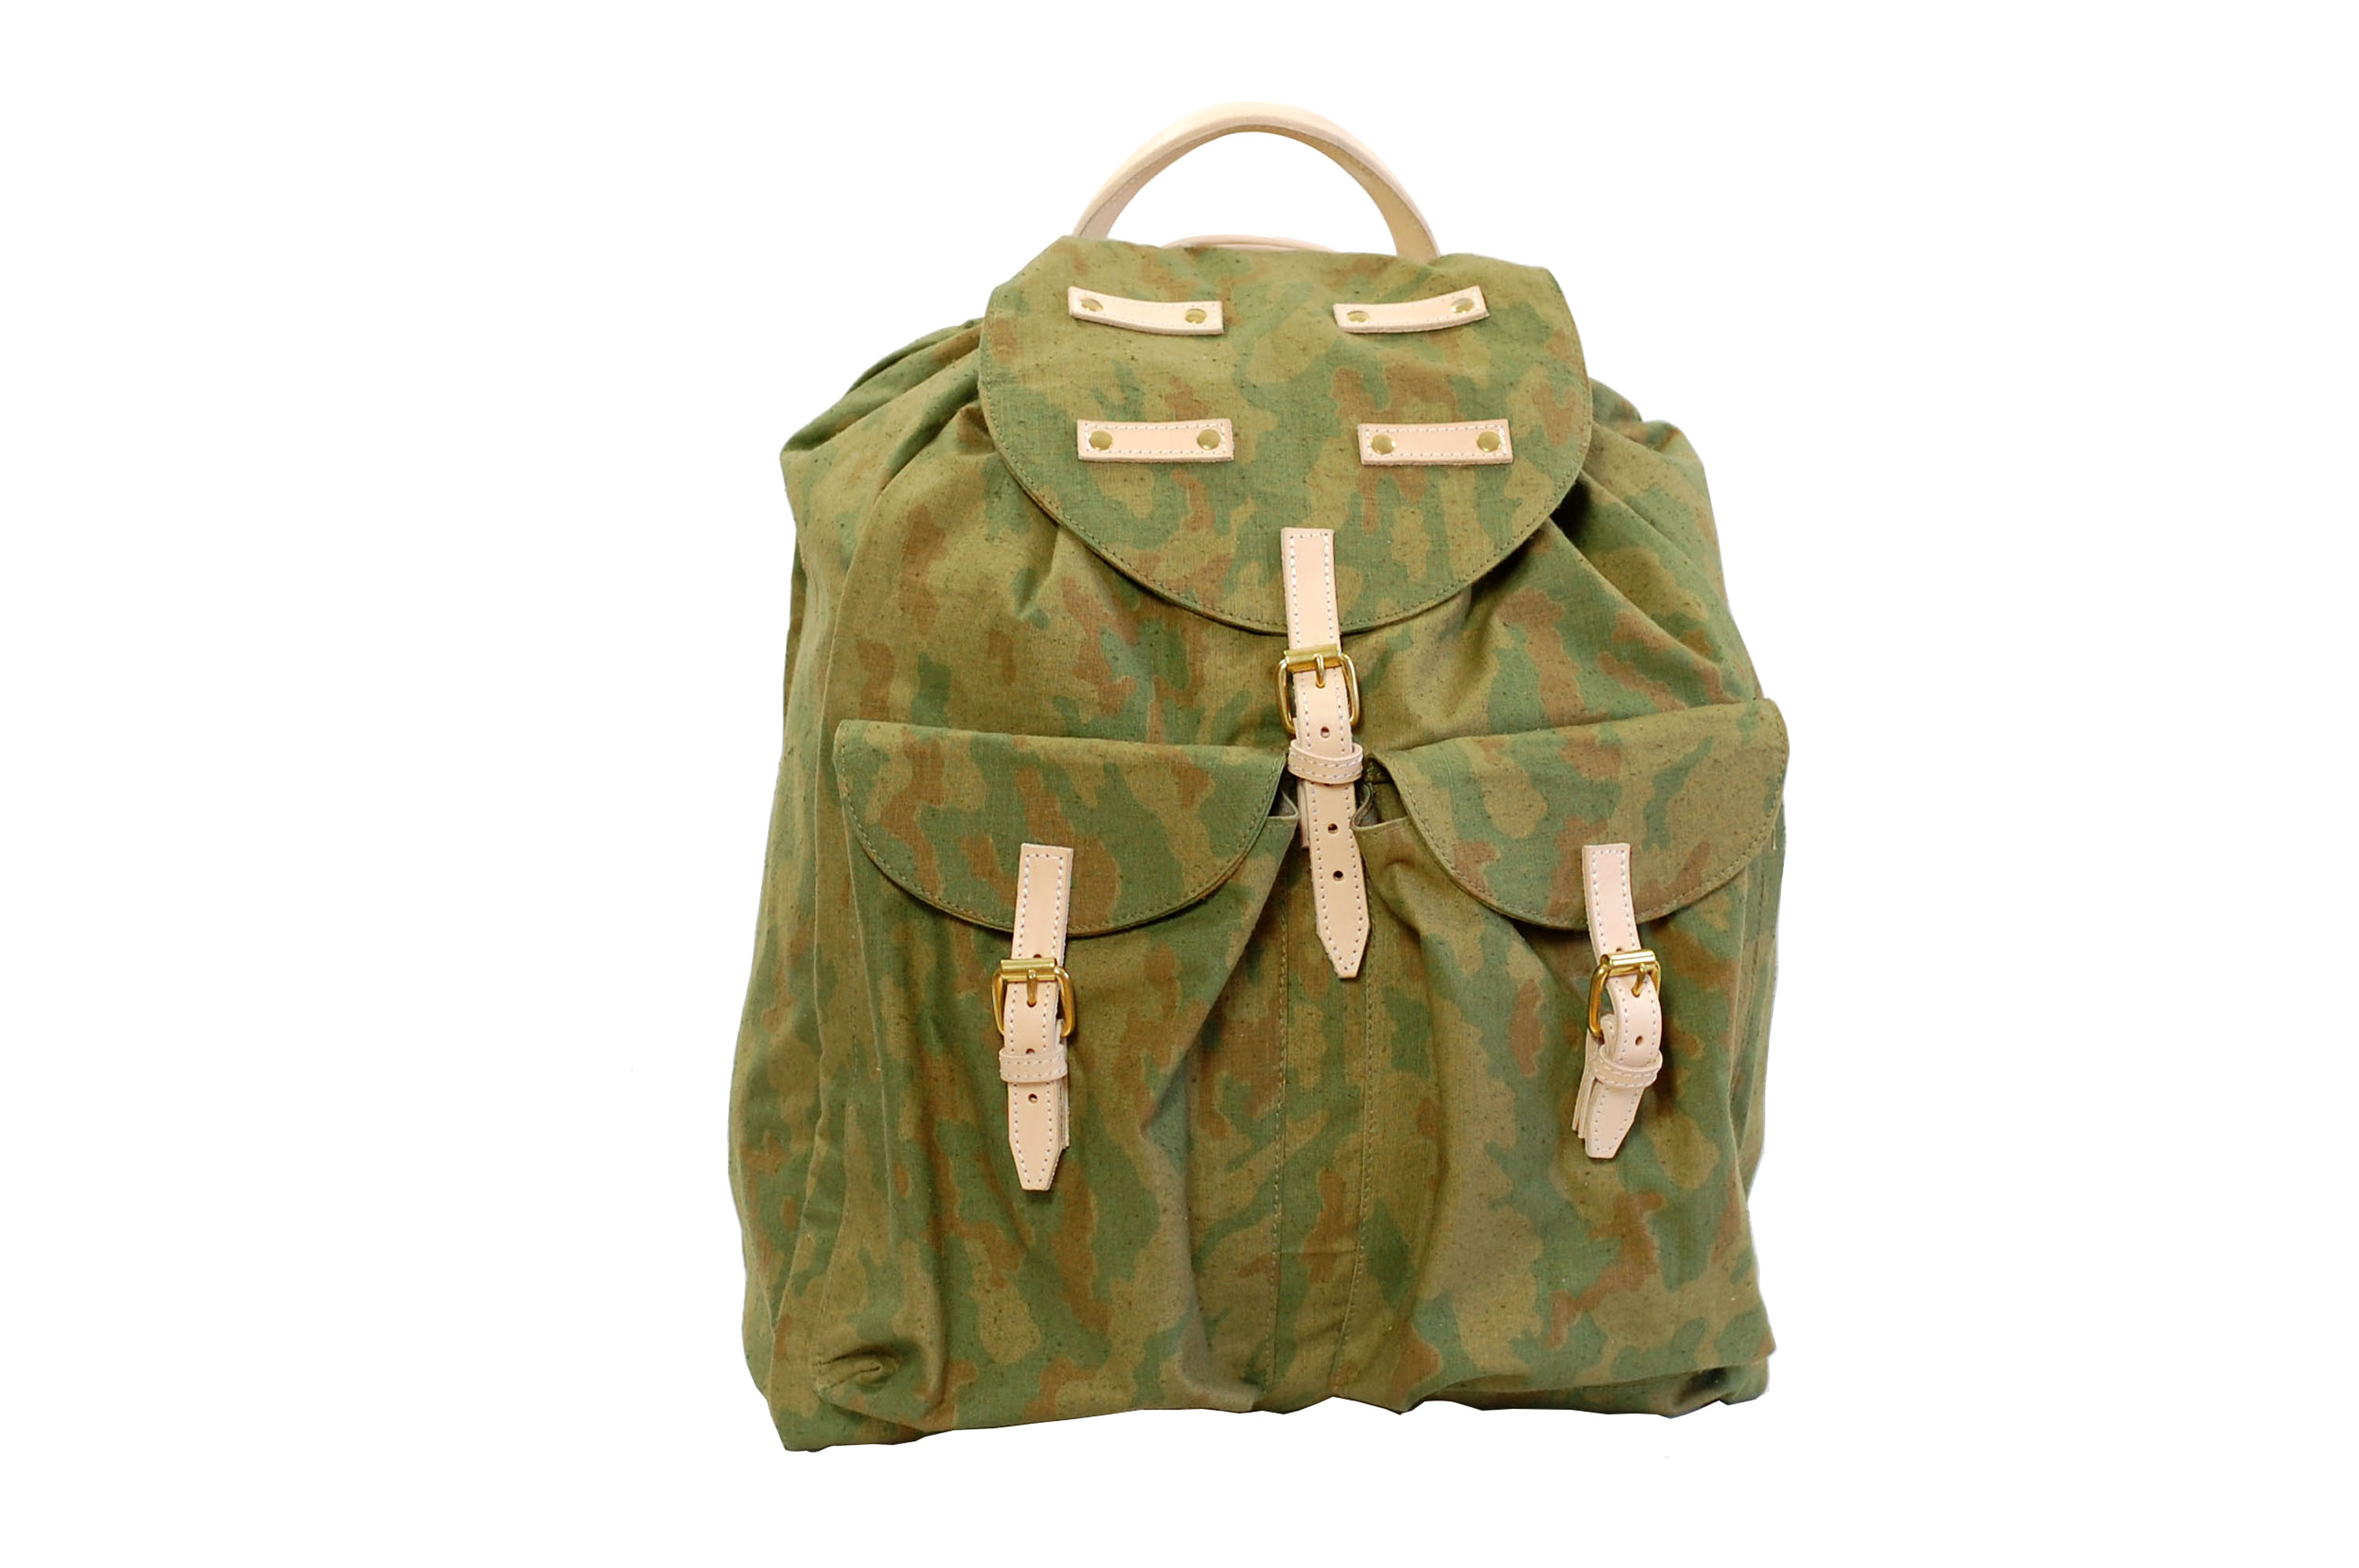 Mahiout Helrik backpack limited edition